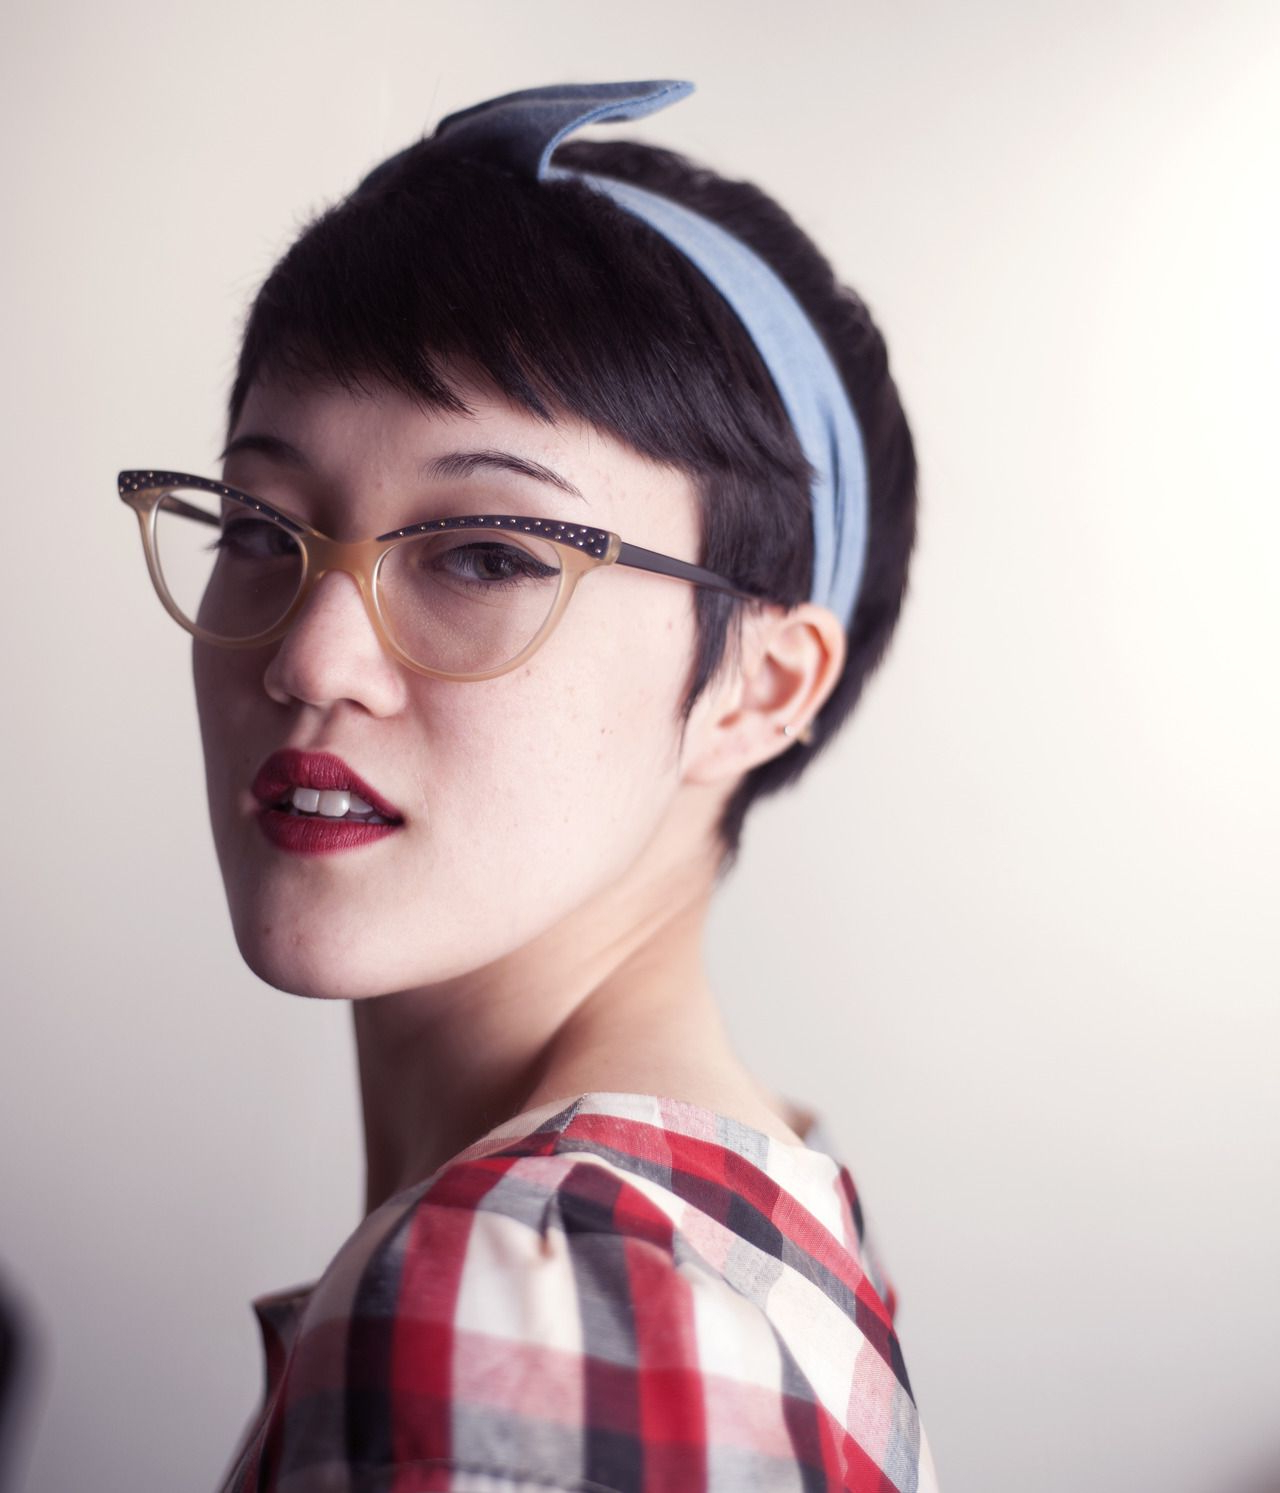 Girls With Short Hair Rock Vintage Glasses. | Short Hair | Pinterest Inside Short Haircuts For Girls With Glasses (Gallery 8 of 25)